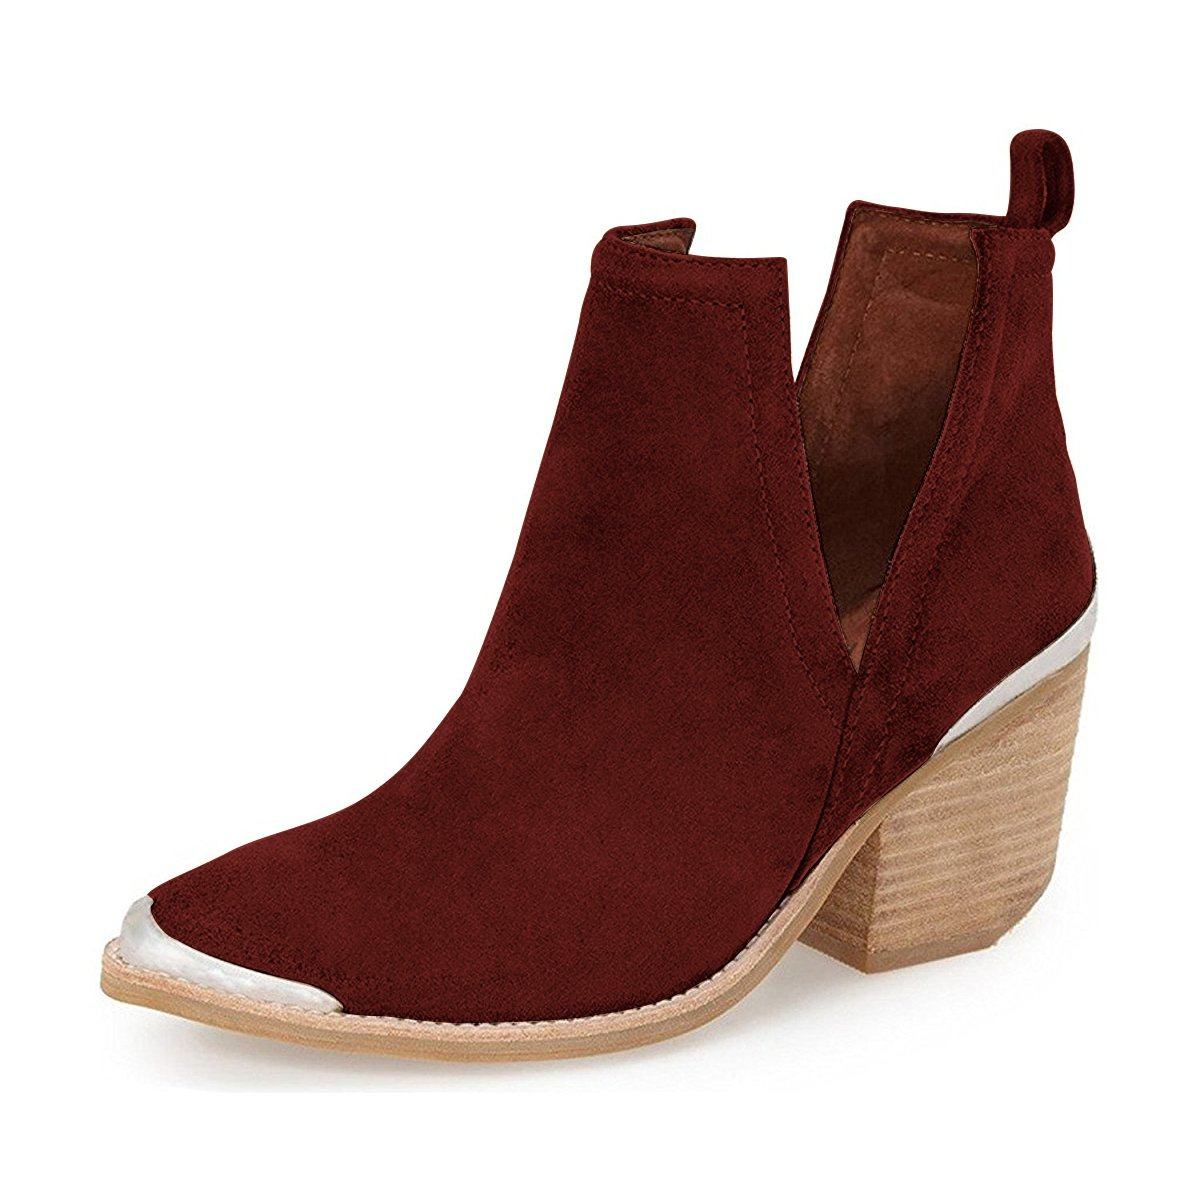 YDN Women Ankle Booties Low Heel Faux Suede Stacked Boots Cut Out Shoes with Metal Toe B01N7PR9R0 12 M US|Wine Red